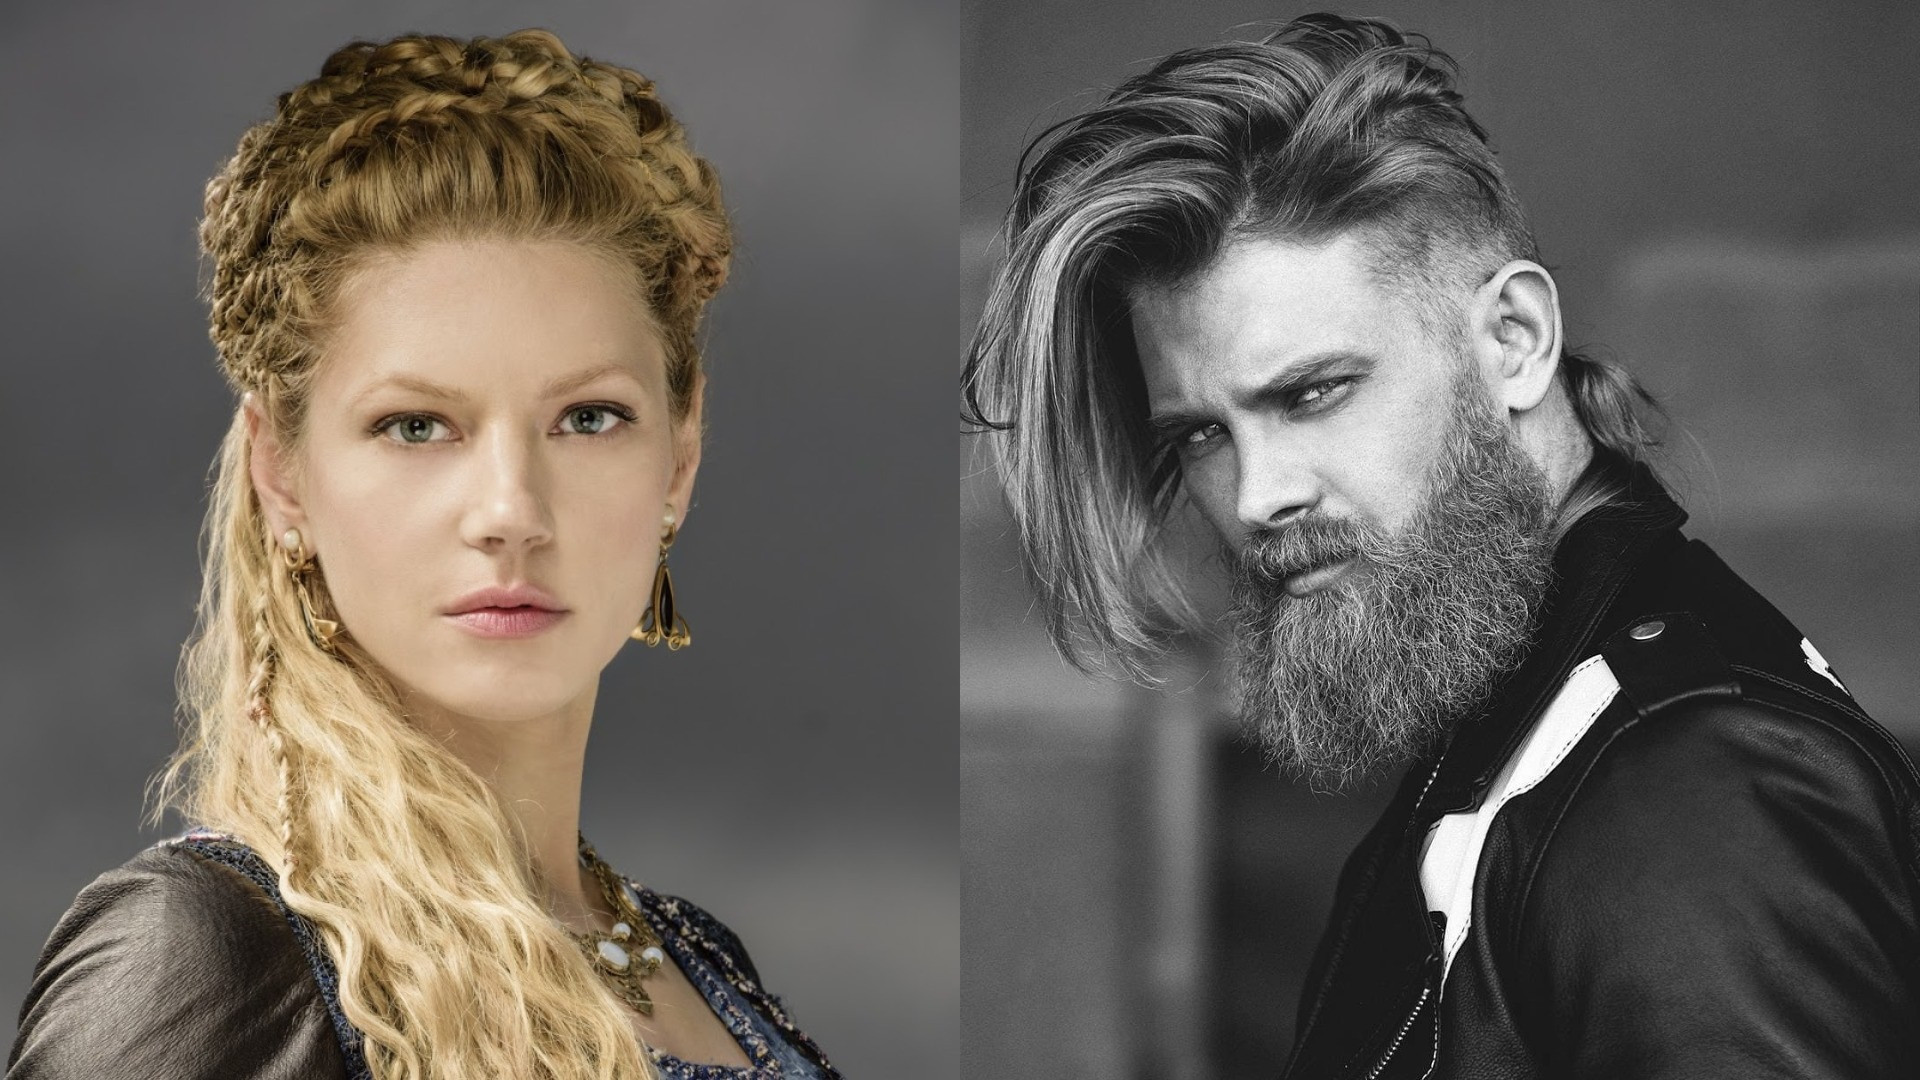 Male To Female Hairstyles  20 Viking Hairstyles for Men and Women of This Millennium